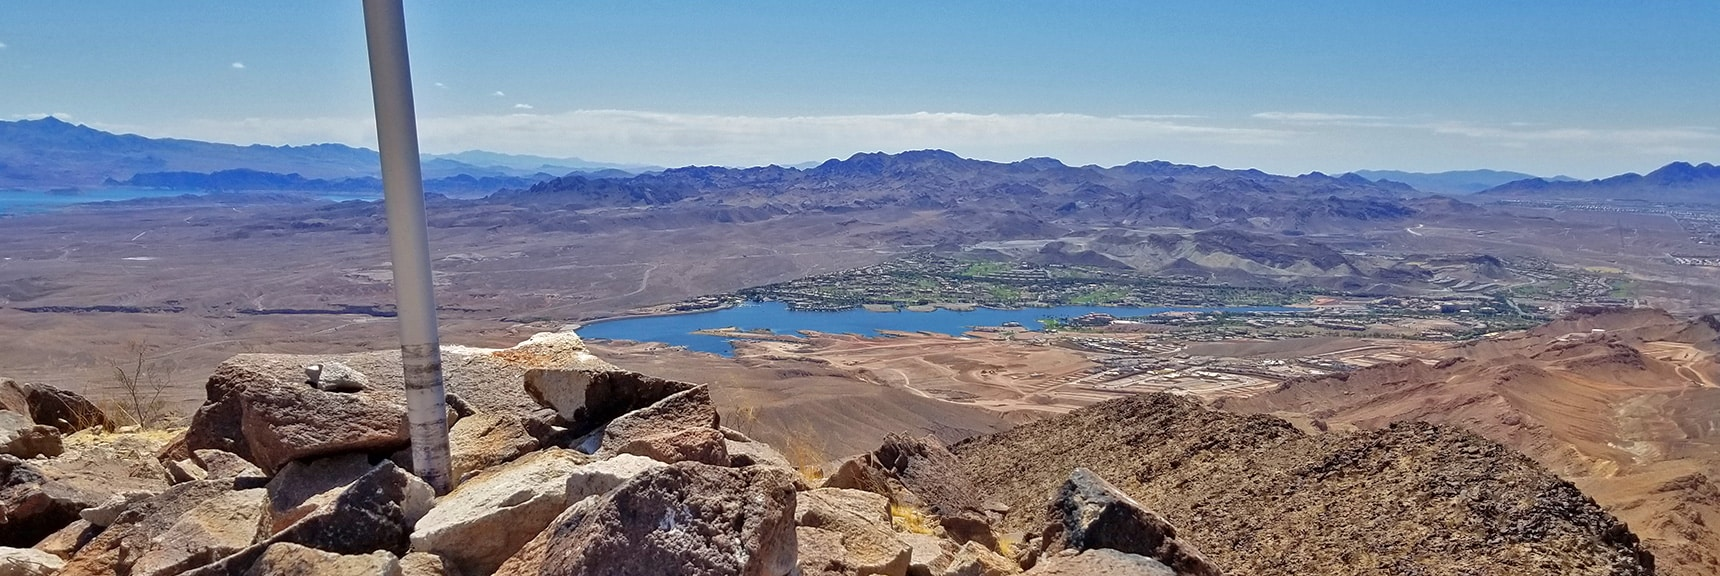 Lake Las Vegas from Lava Butte Summit | Lava Butte | Lake Mead National Recreation Area, Nevada